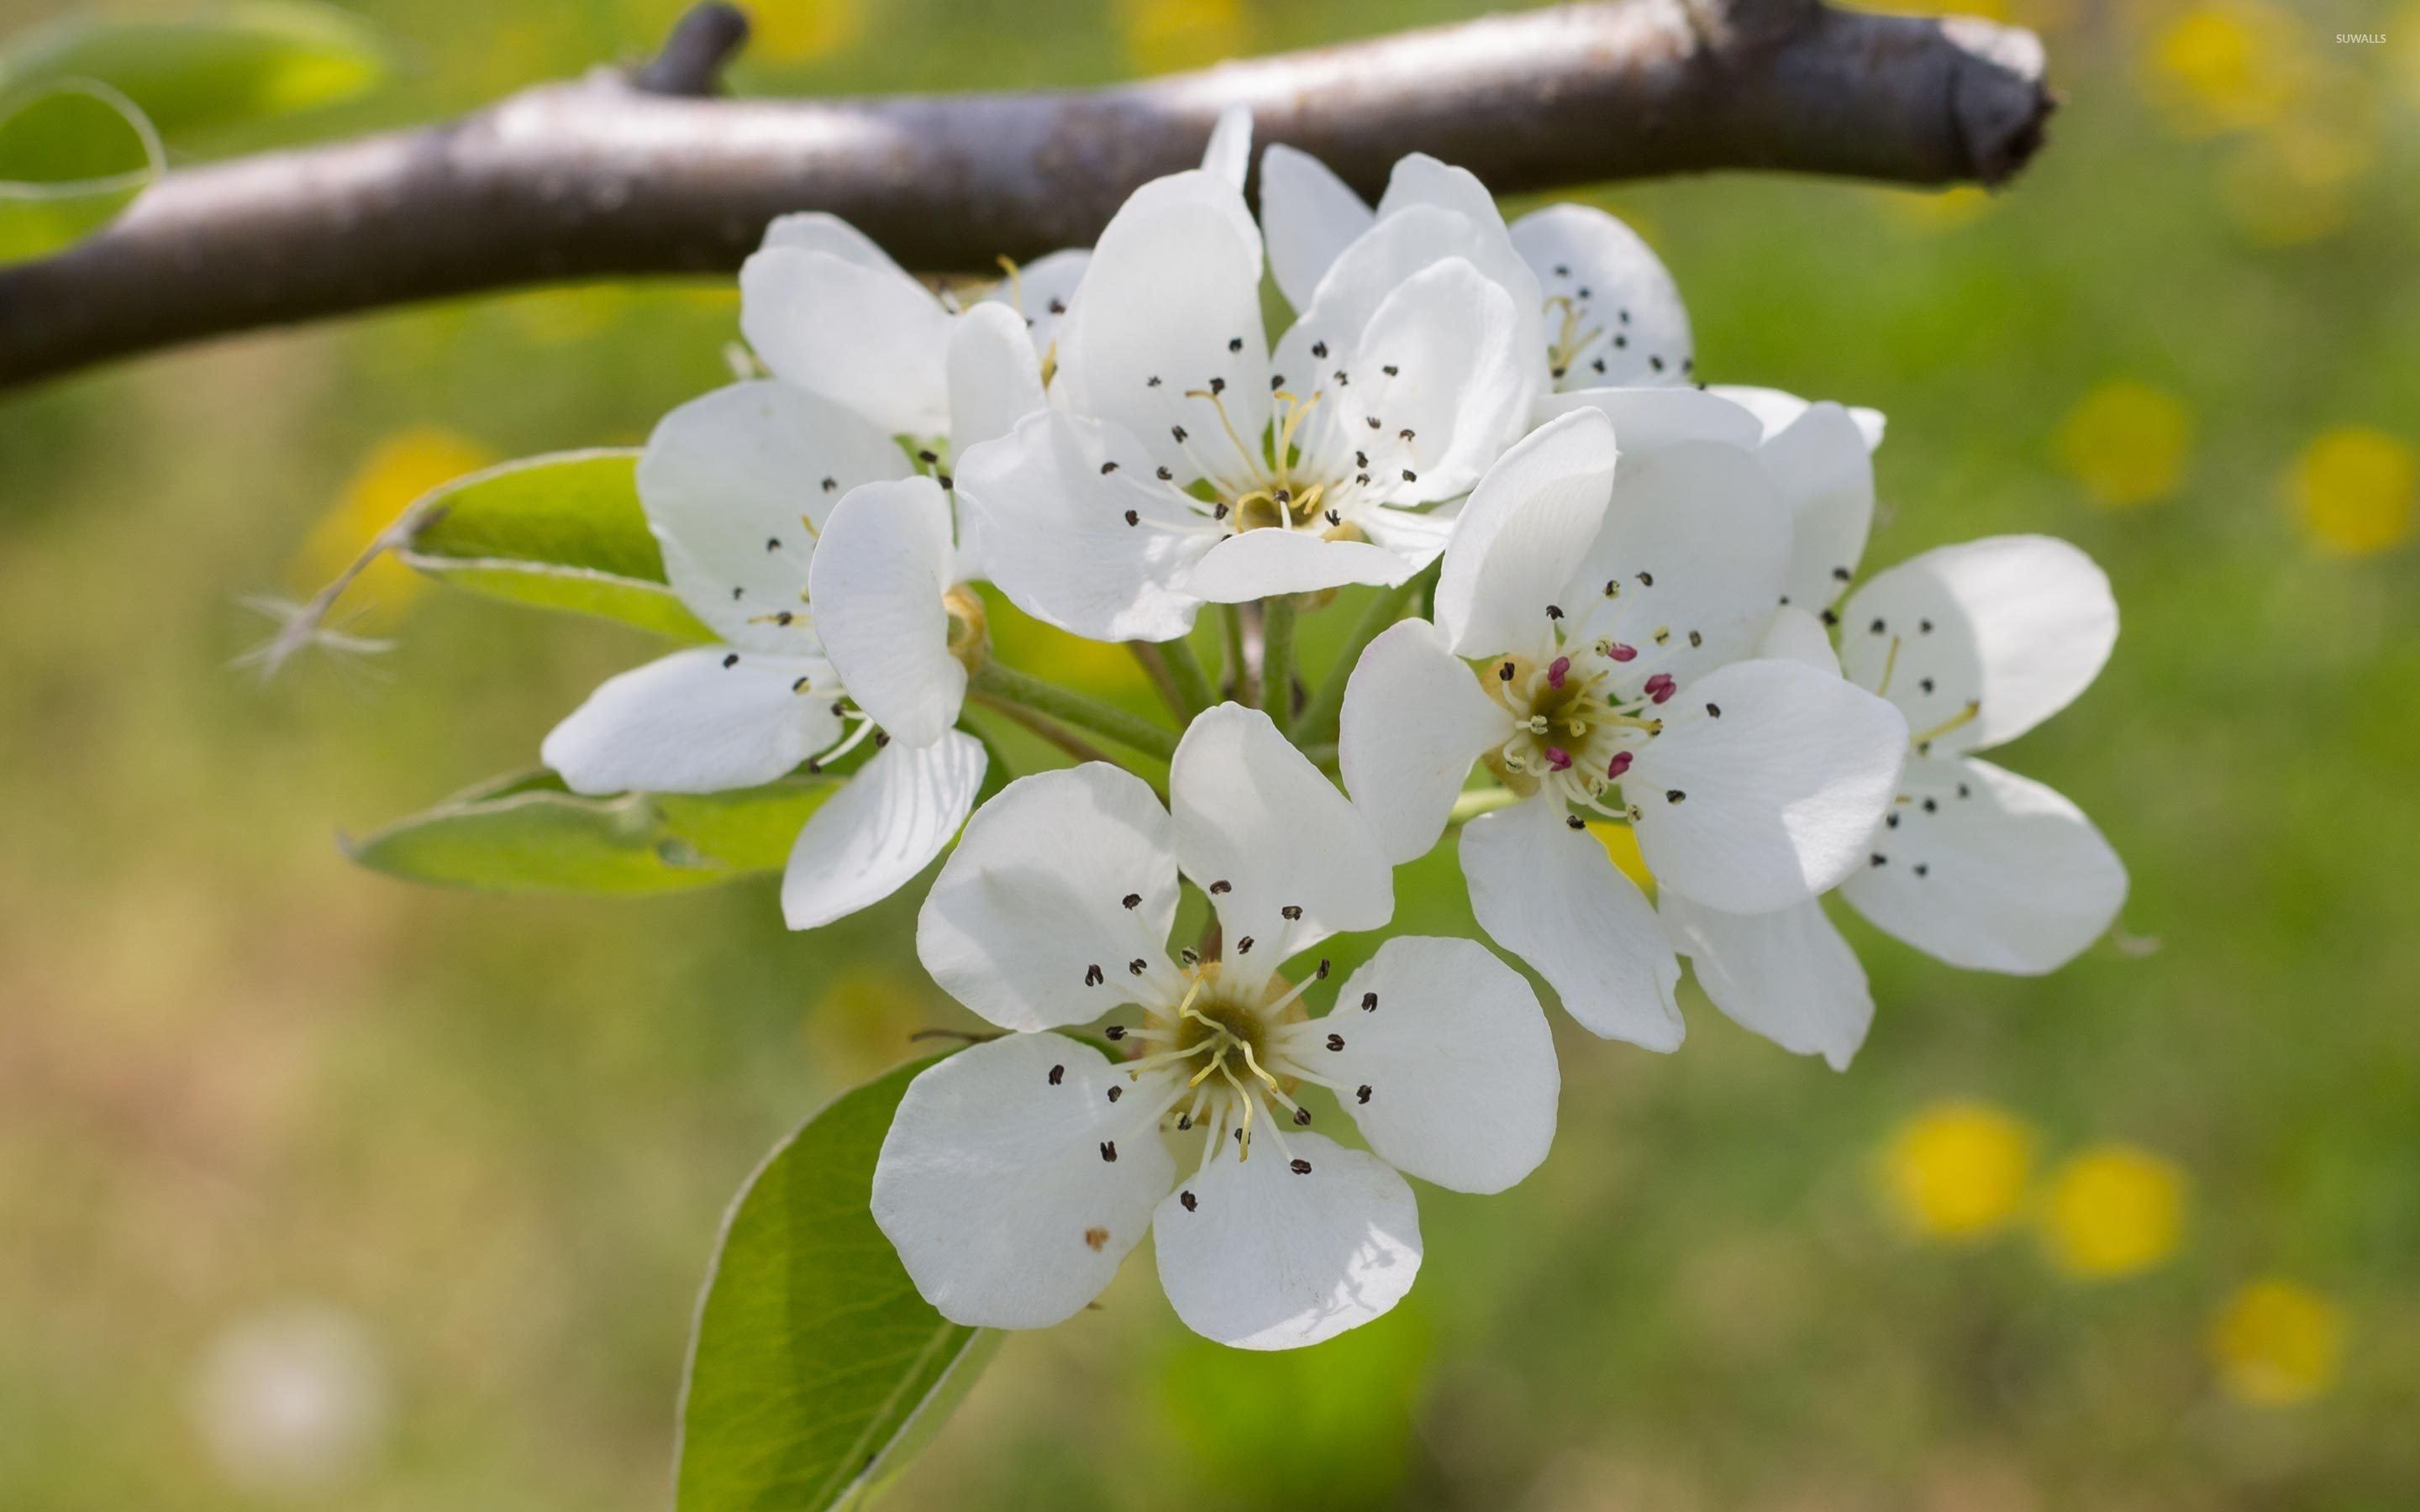 2880x1800 Pear blossoms on the branch wallpaper